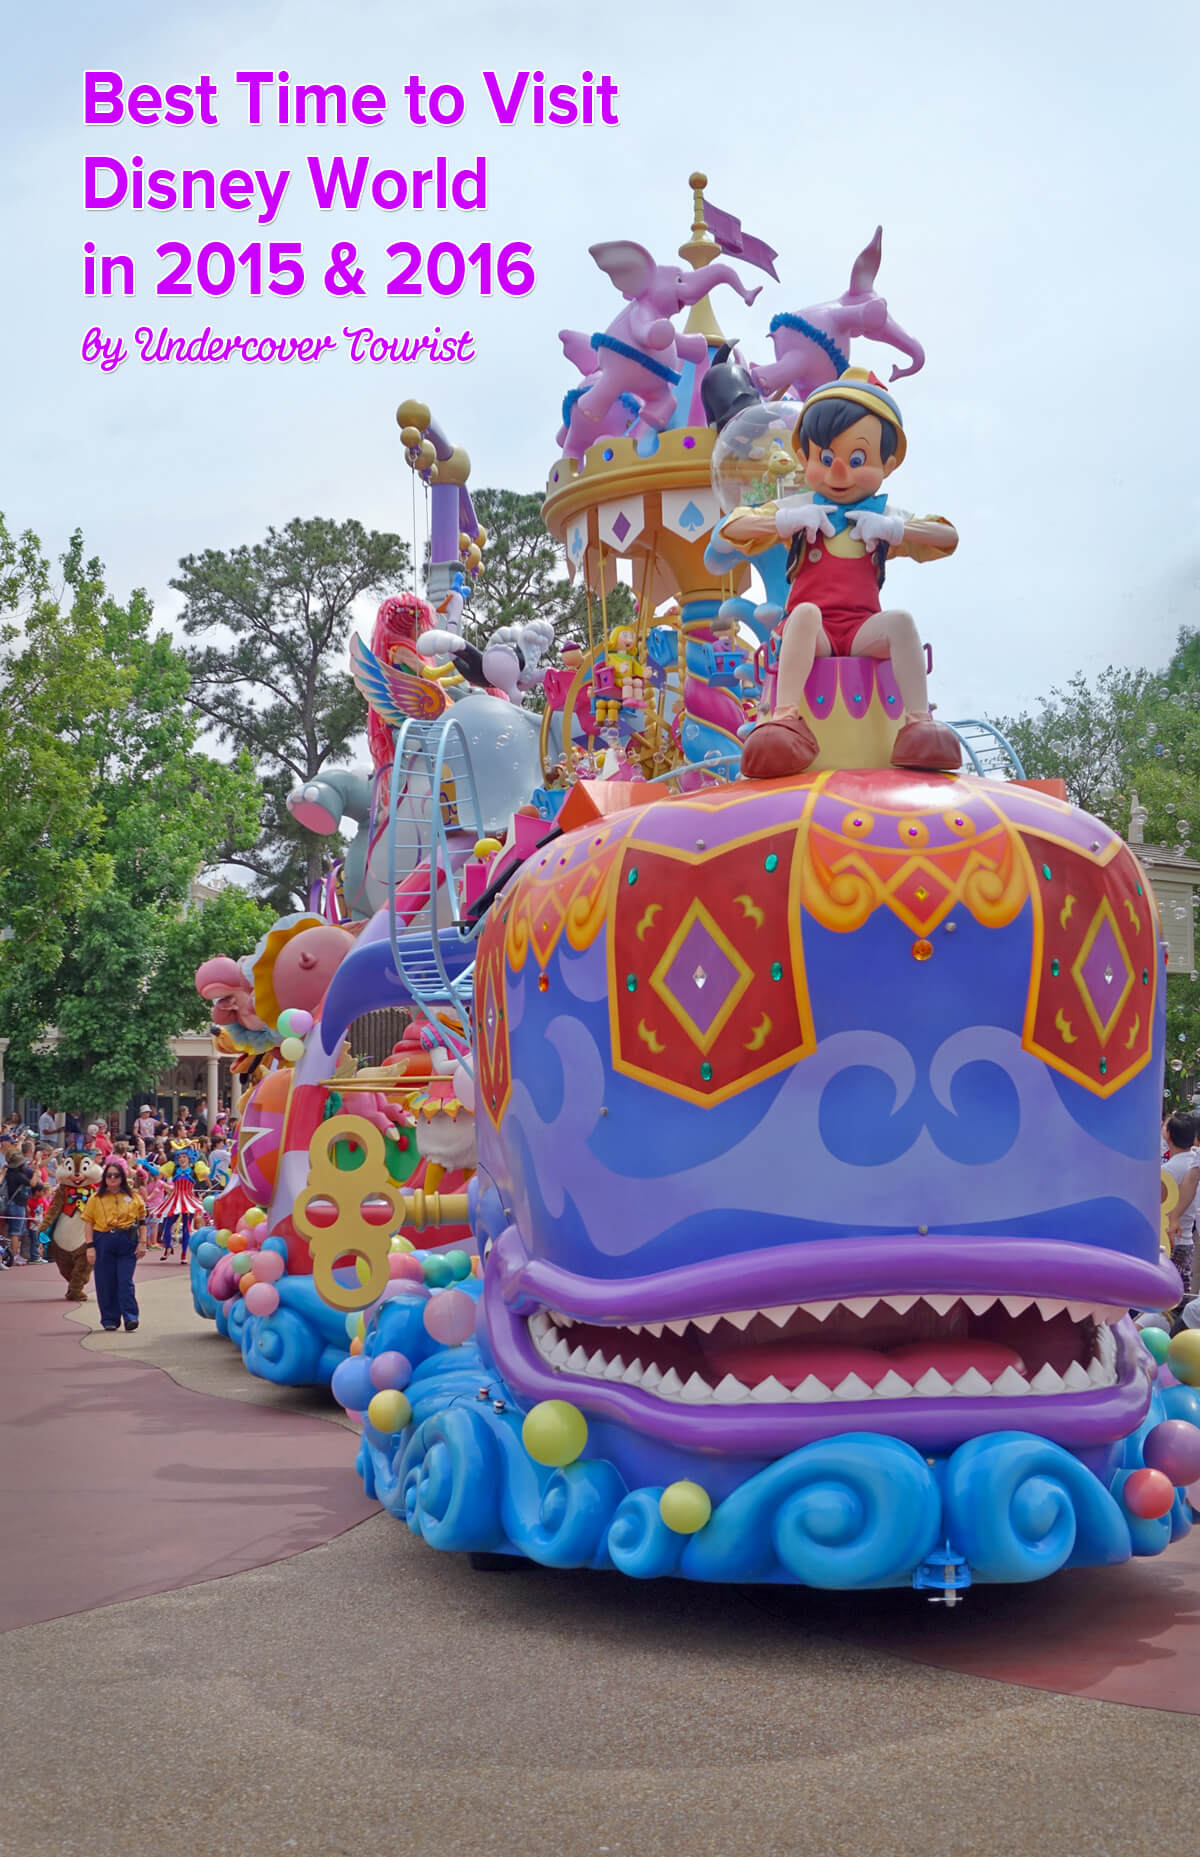 Best time to visit Disney World in 2015 & 2016